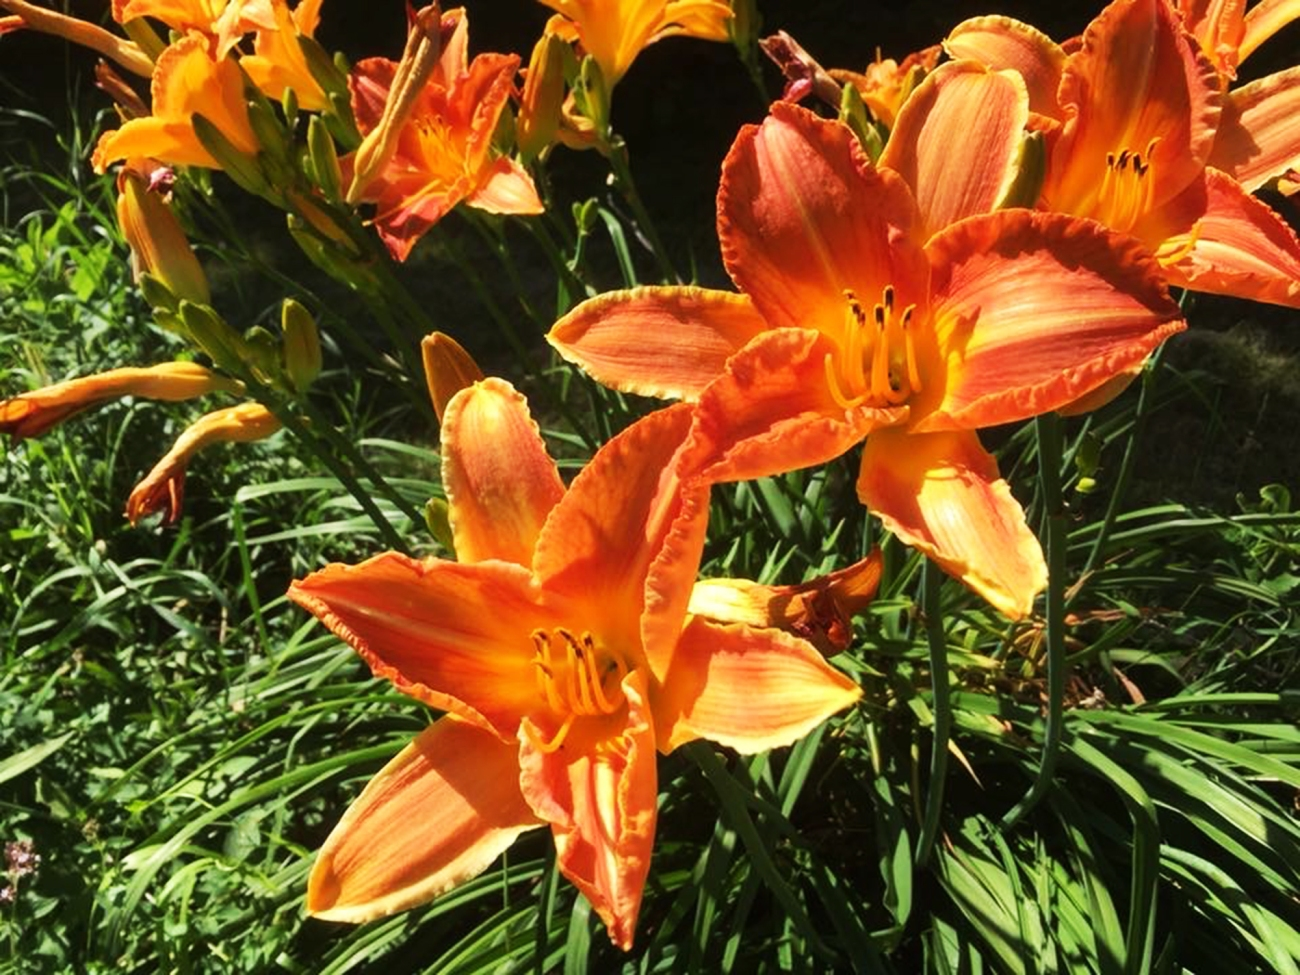 Day Lilies photograph @2018 Jerry Ingeman used by permission